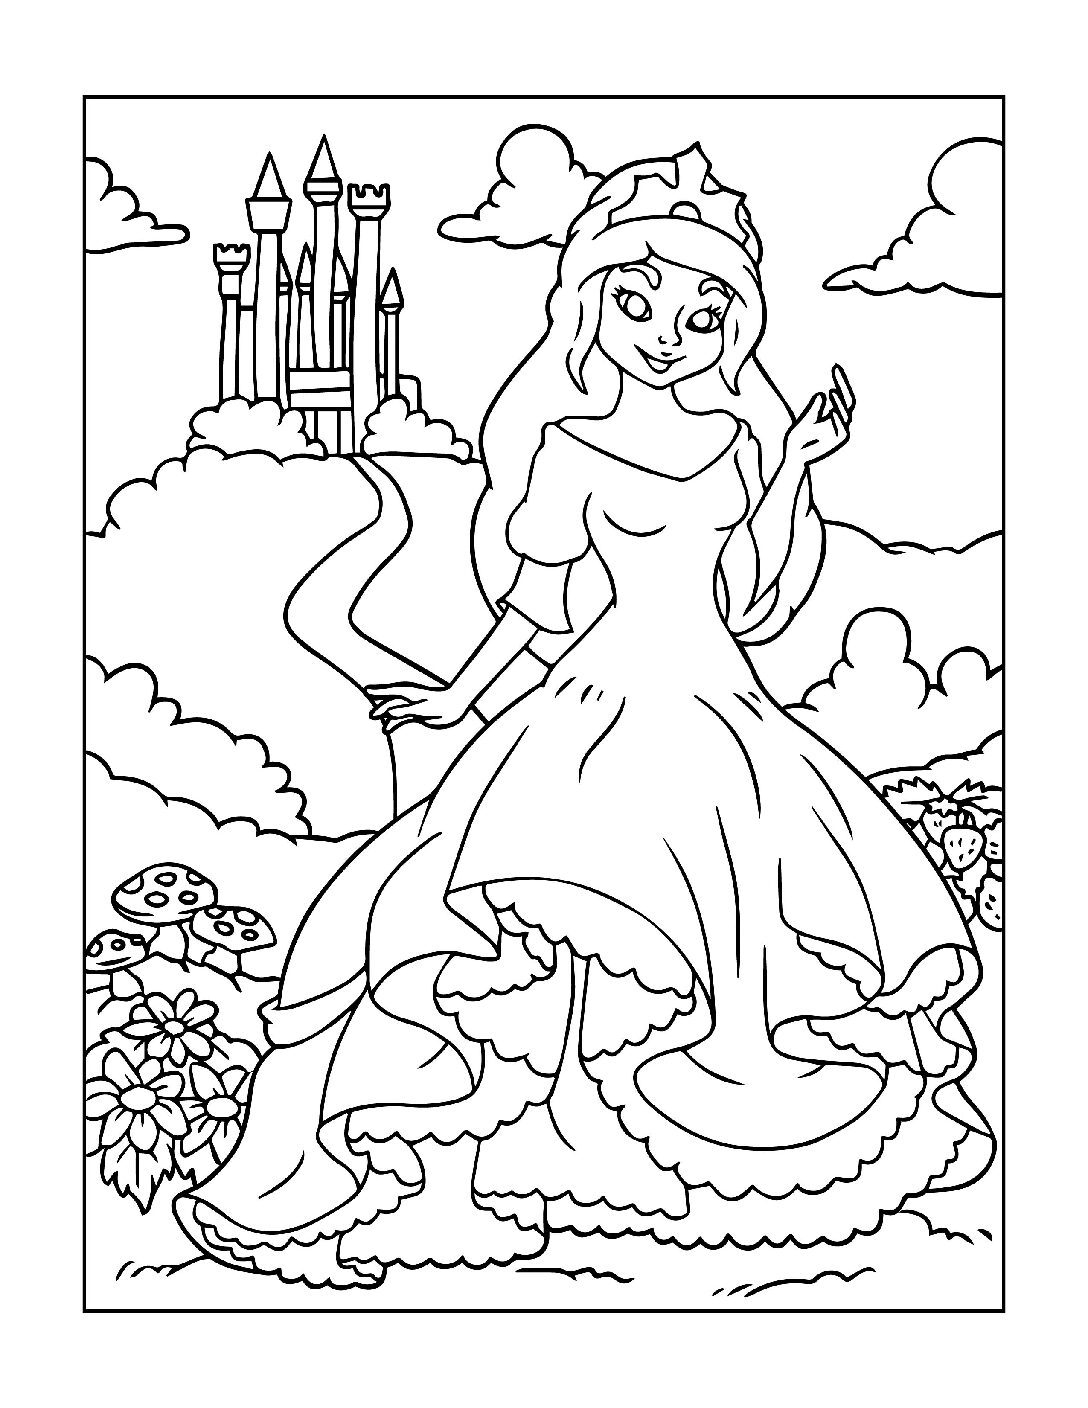 Coloring-Pages-Princess-3-01-pdf Free Printable Princesses Colouring Pages